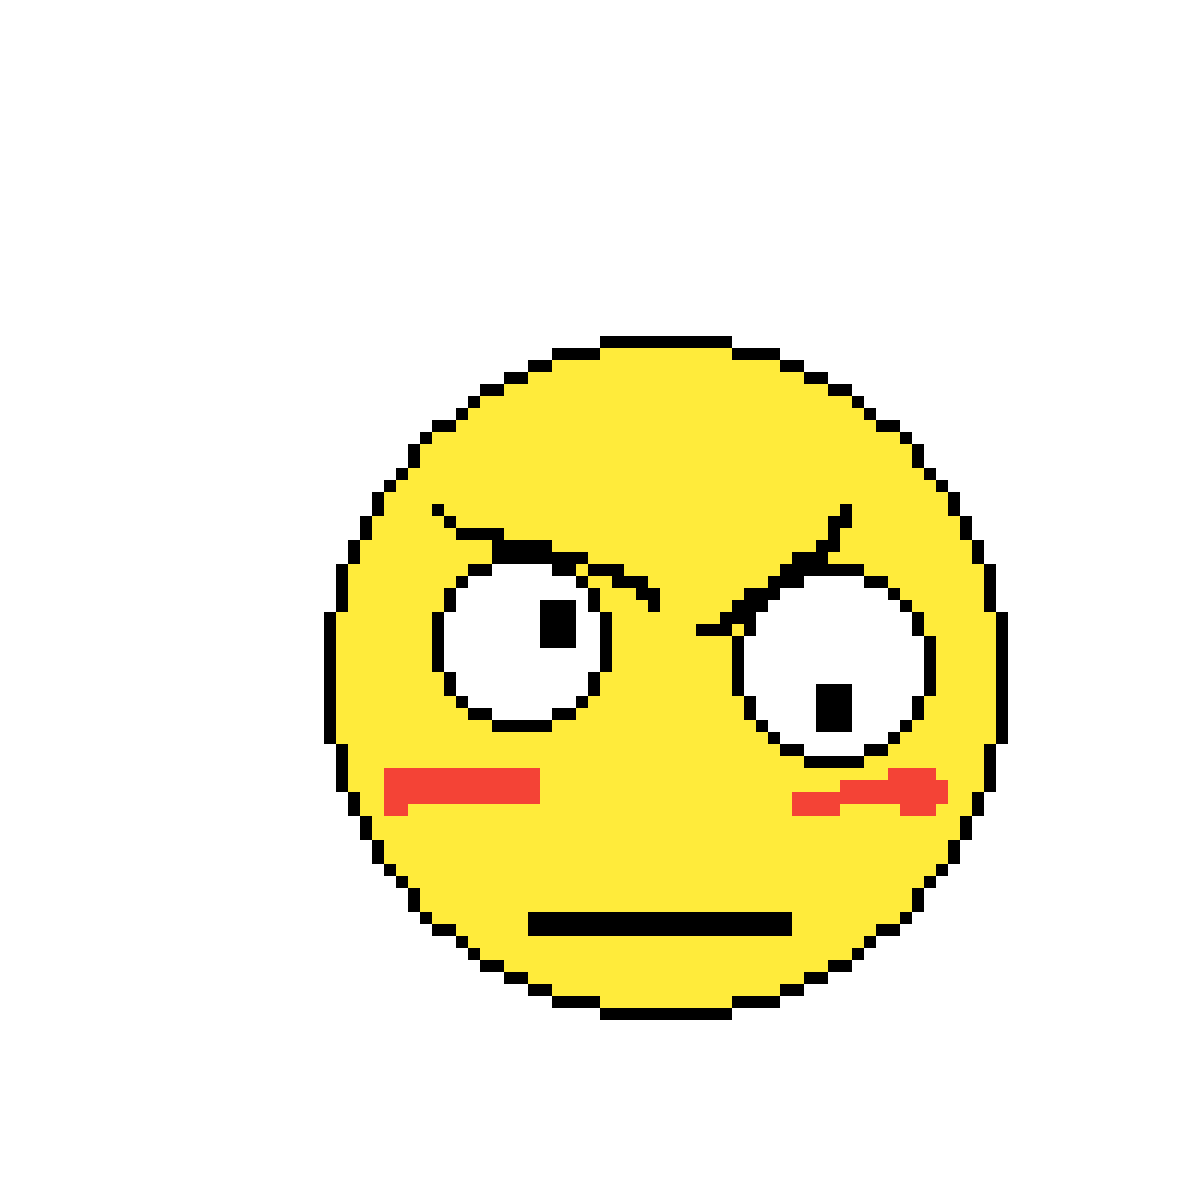 Emojis drawing creative uses. Pixilart derpy angry warrior